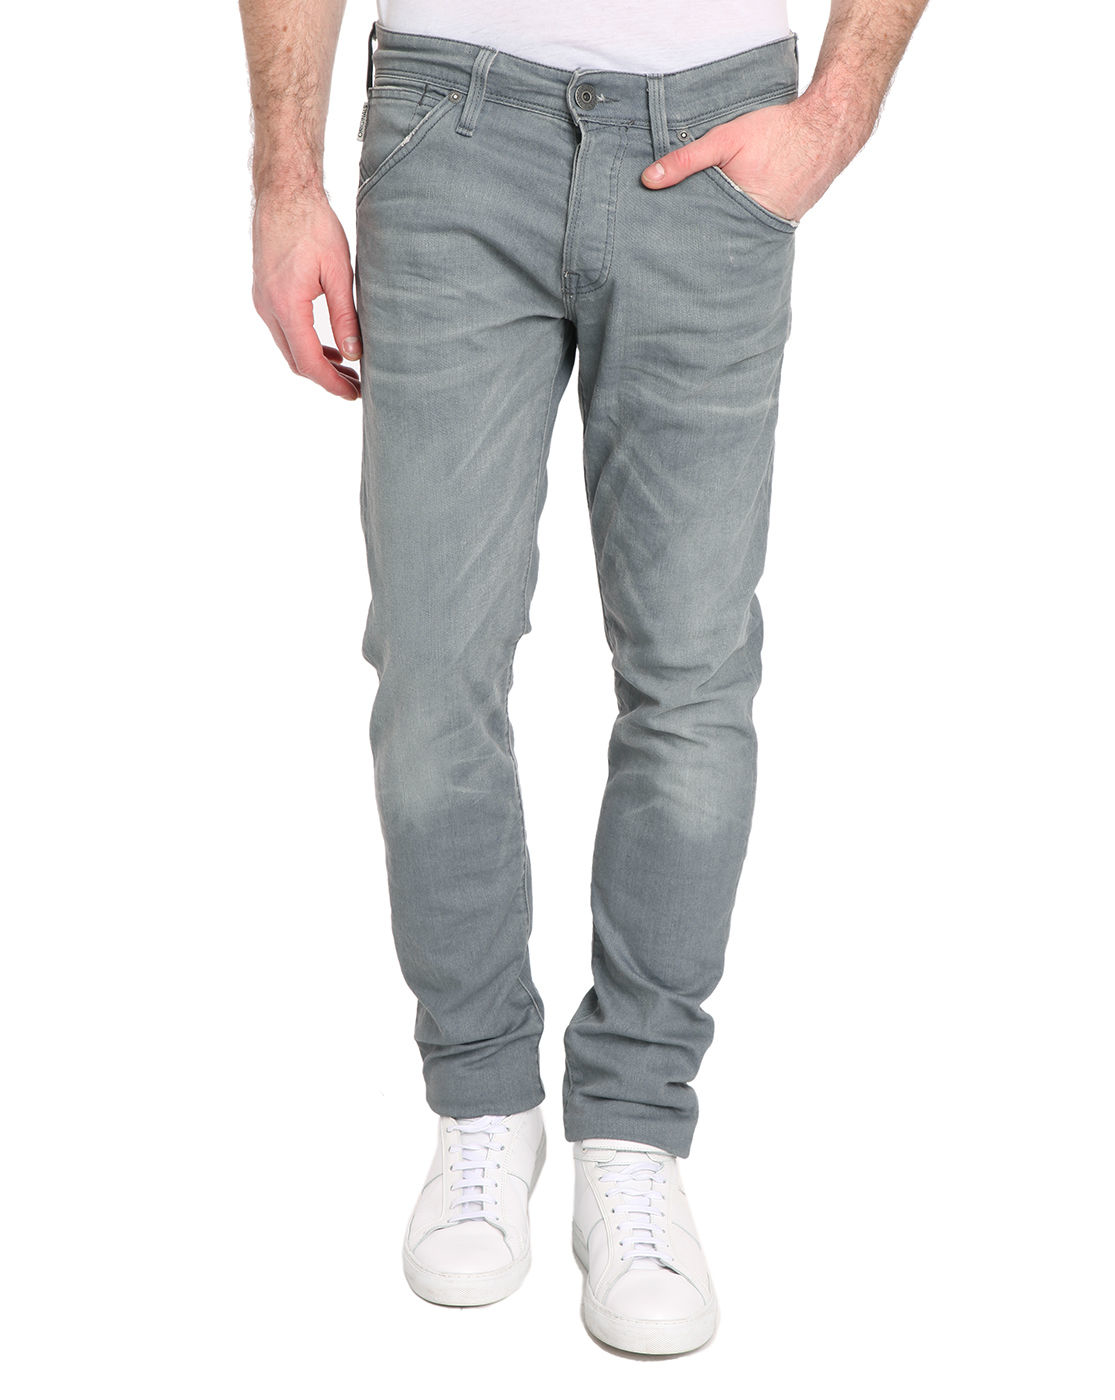 jack jones slim fit grey glenn jeans in gray for men lyst. Black Bedroom Furniture Sets. Home Design Ideas